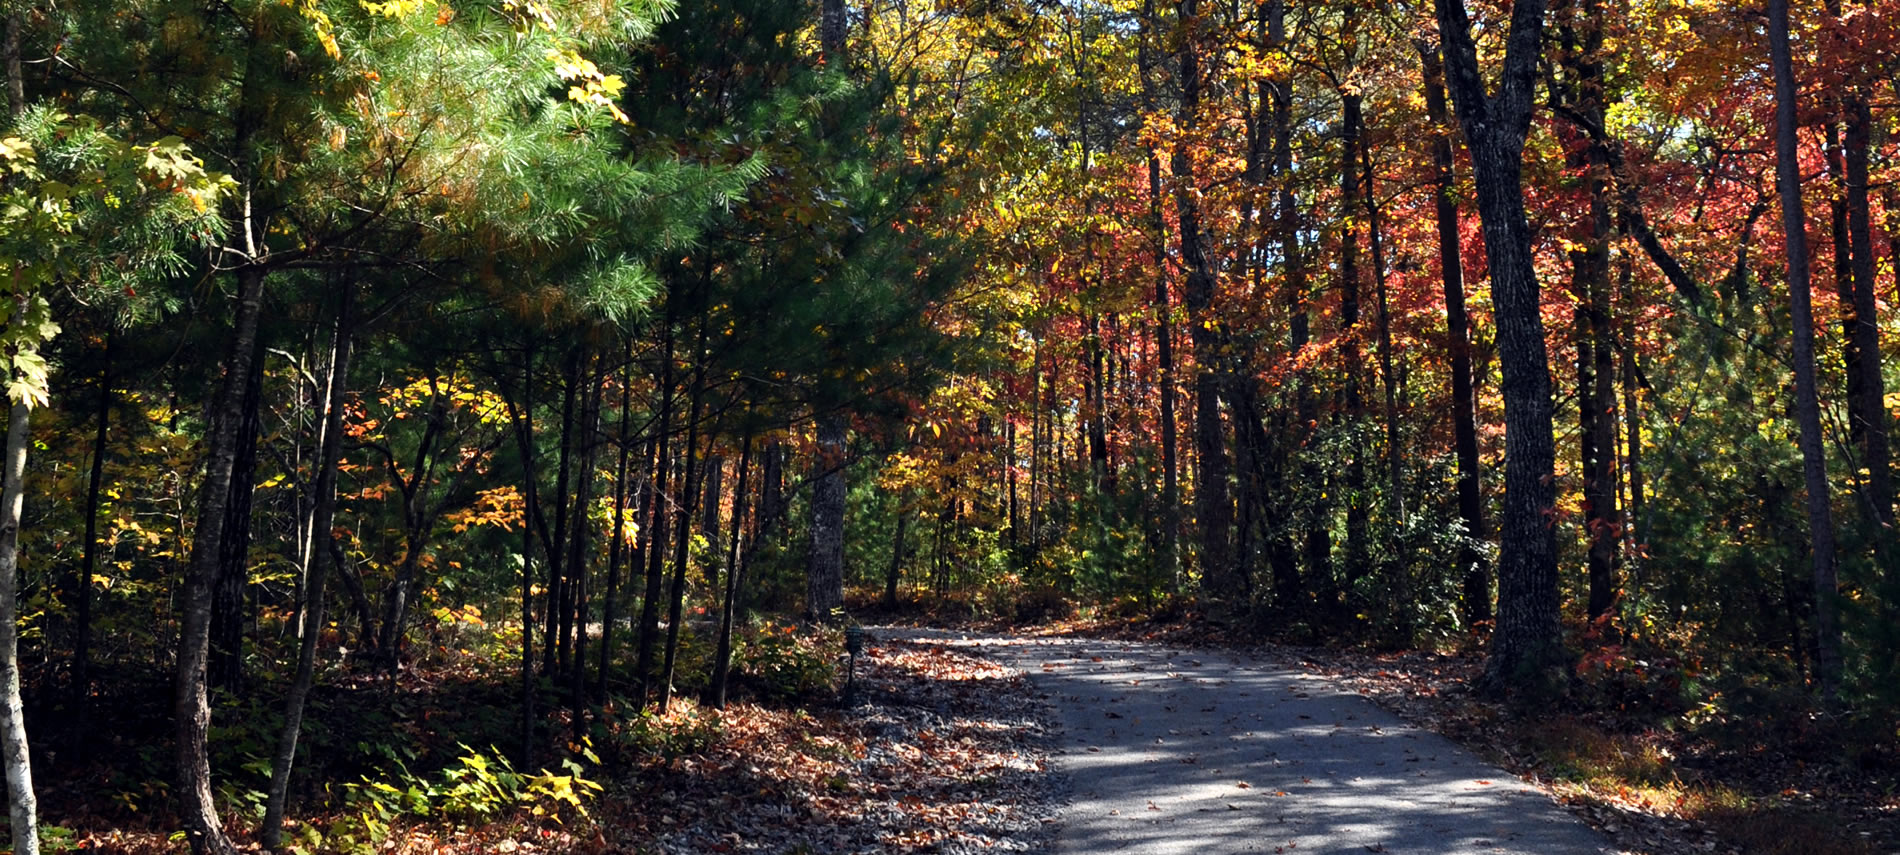 A road thru the woods in Autumn with all the different fall colors